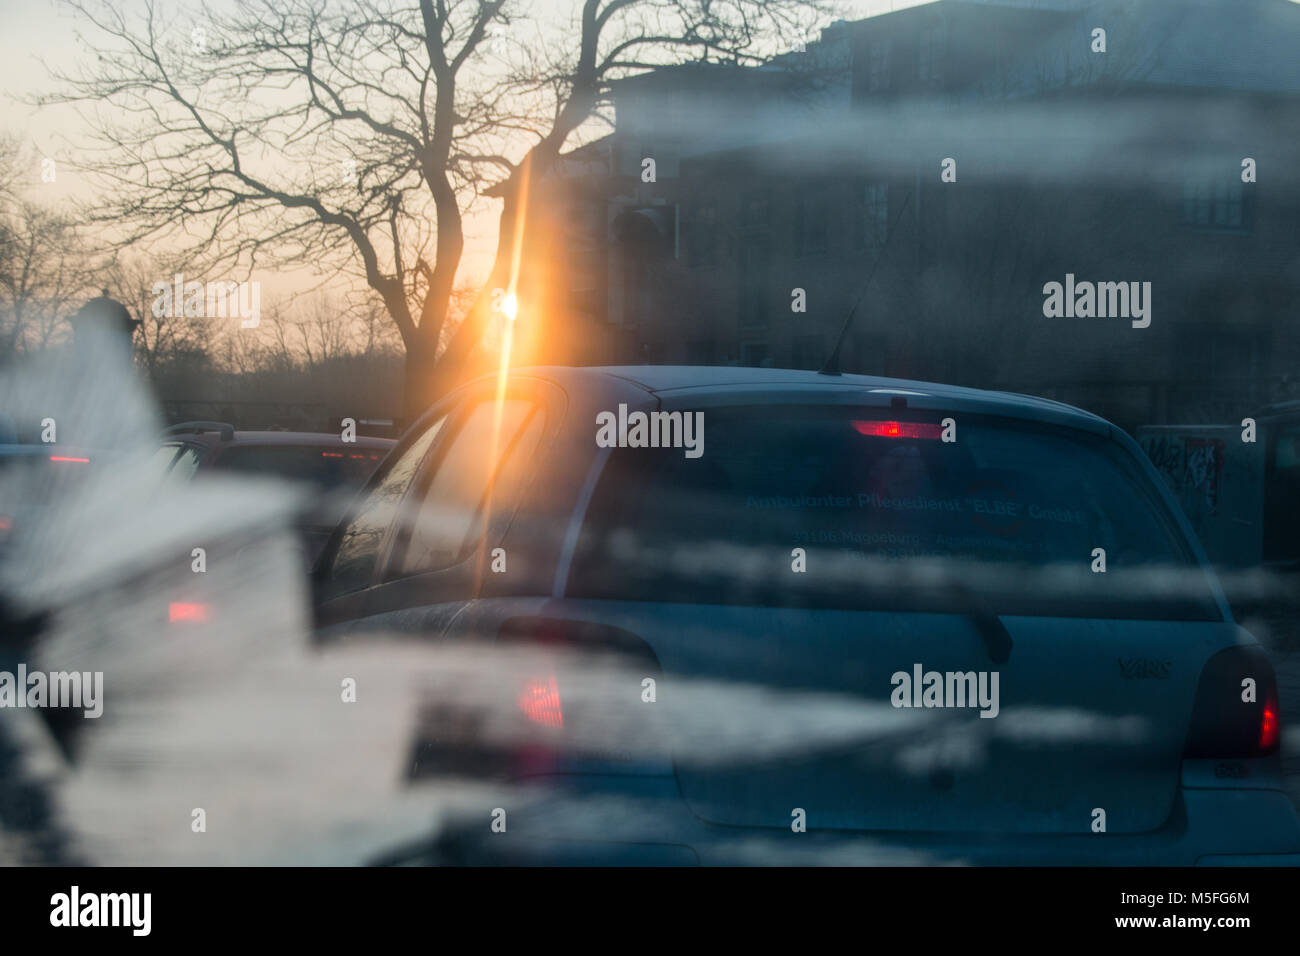 Magdeburg, Germany - 21 February 2018: Symbol for poor visibility in road traffic during the cold season. View from - Stock Image